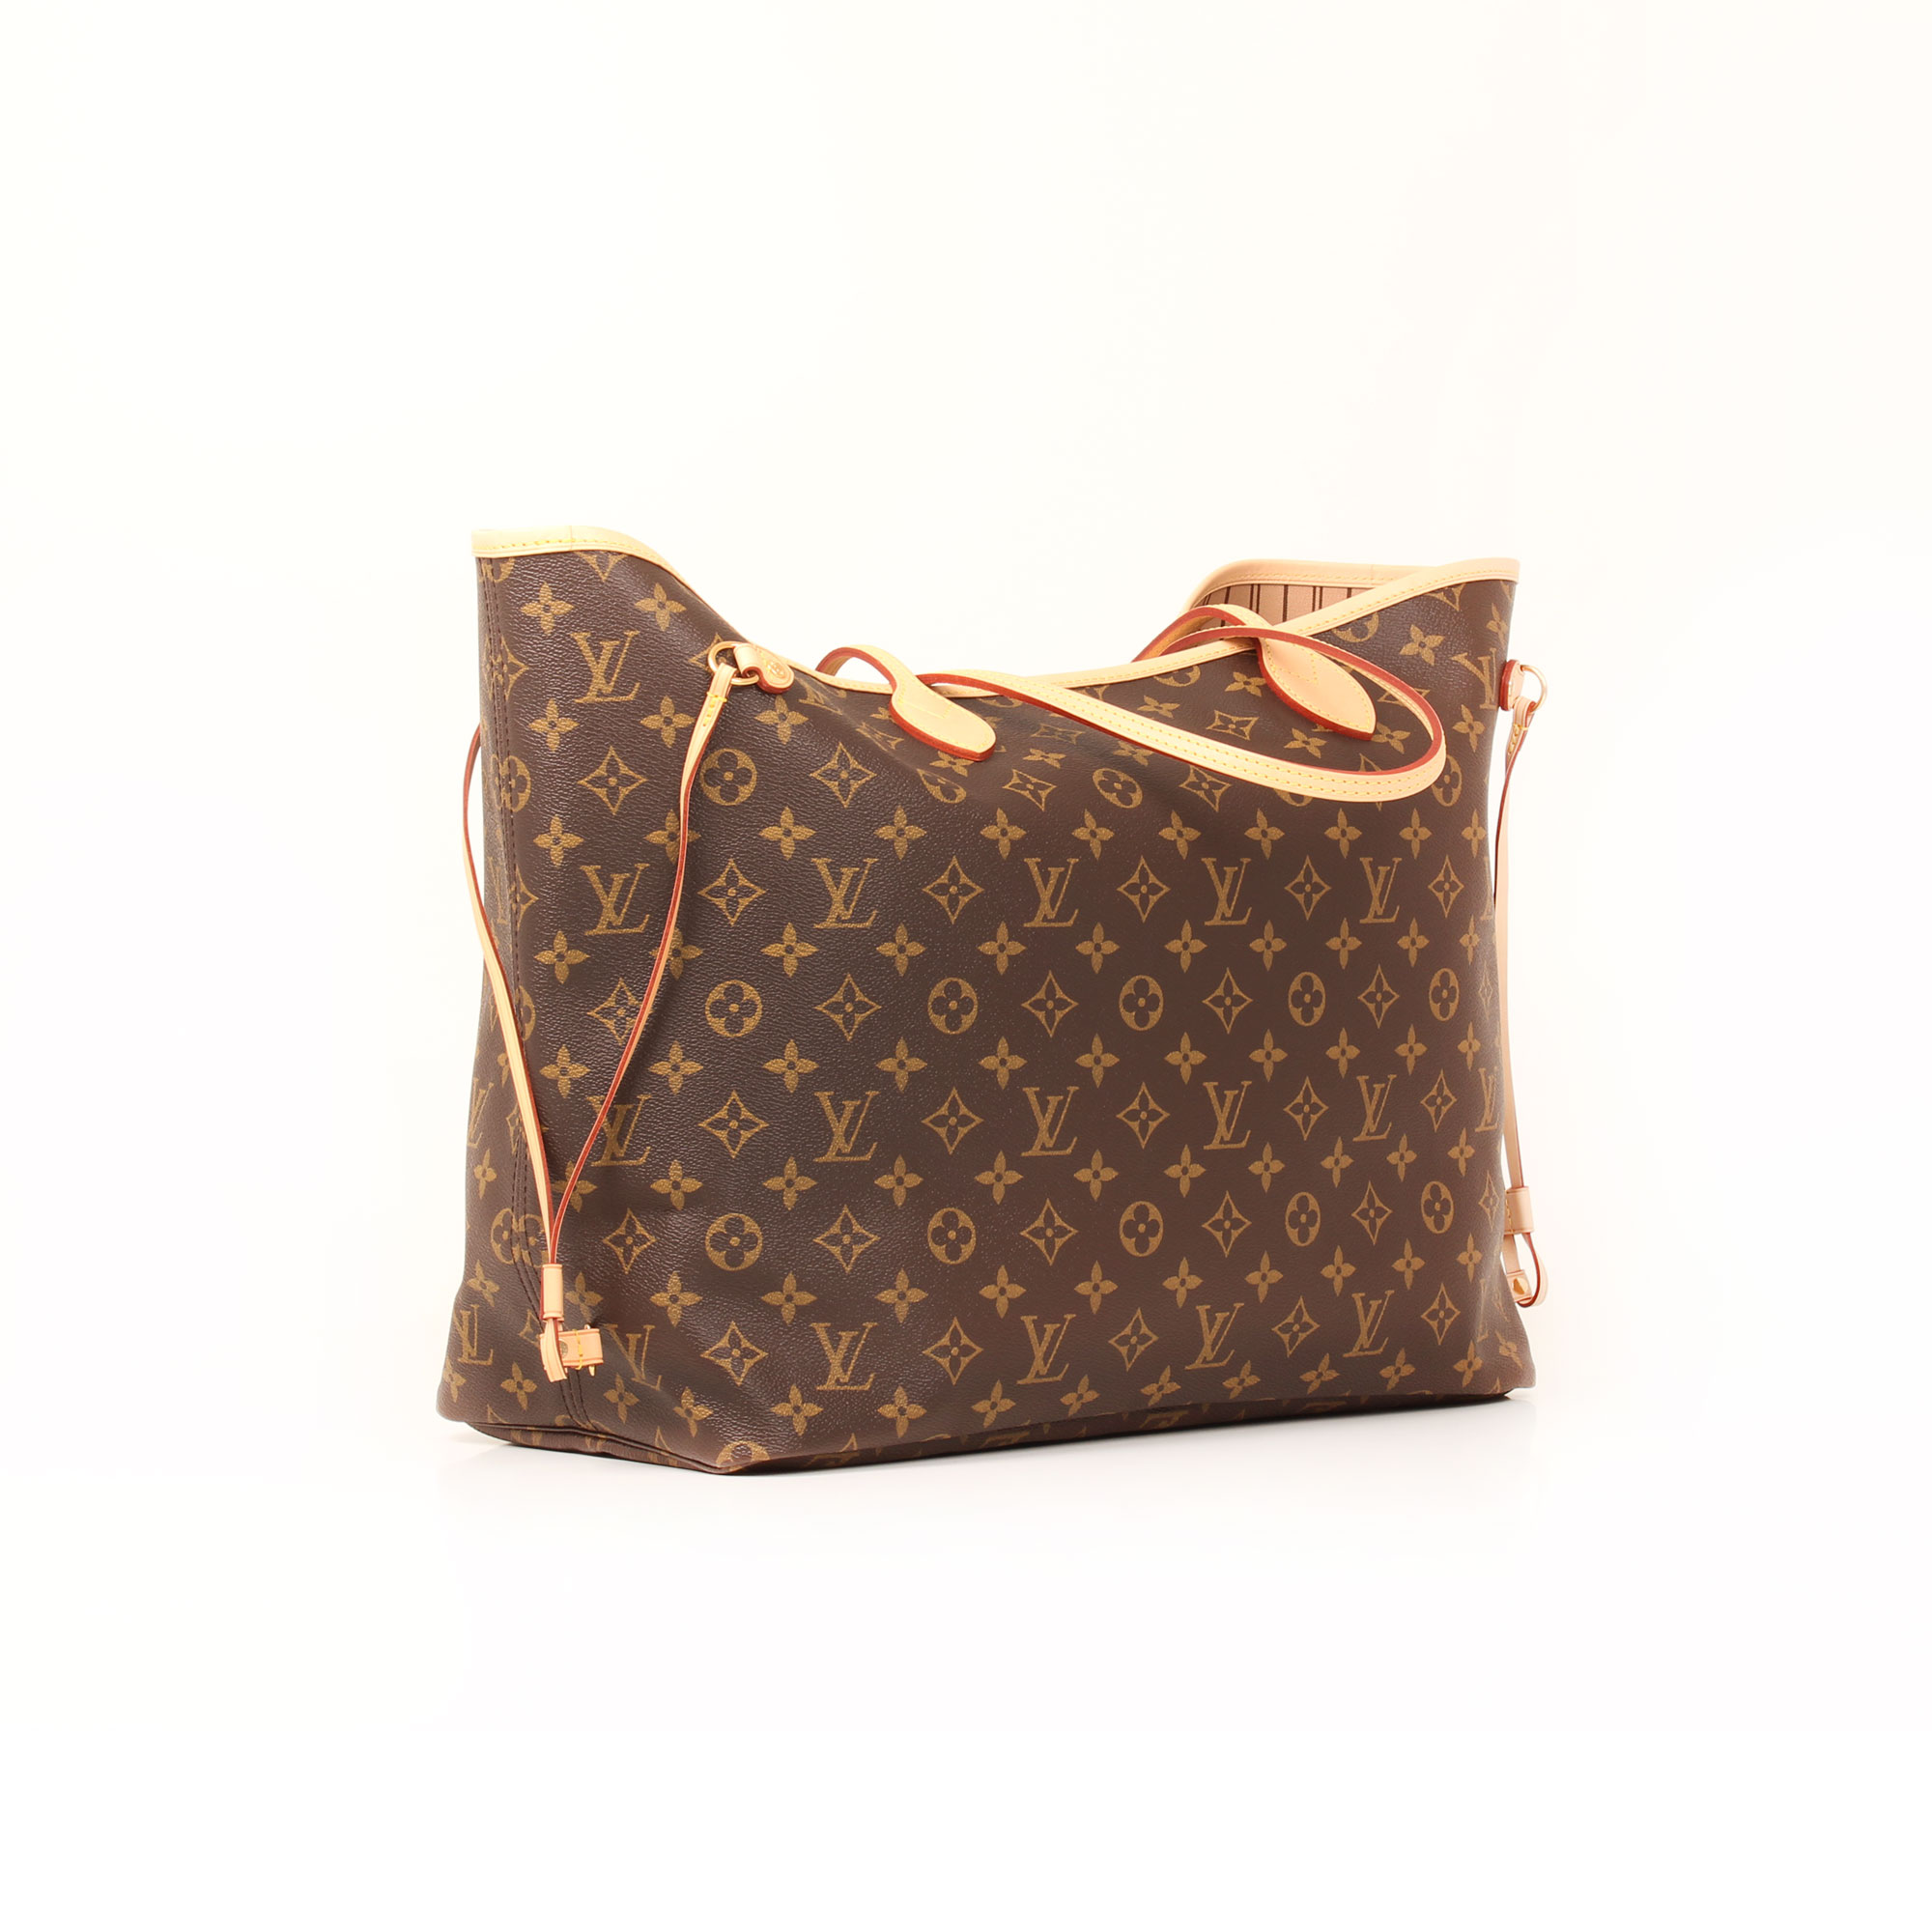 bolso-louis-vuitton-neverfull-gm-monogram-nuevo-lateral-2